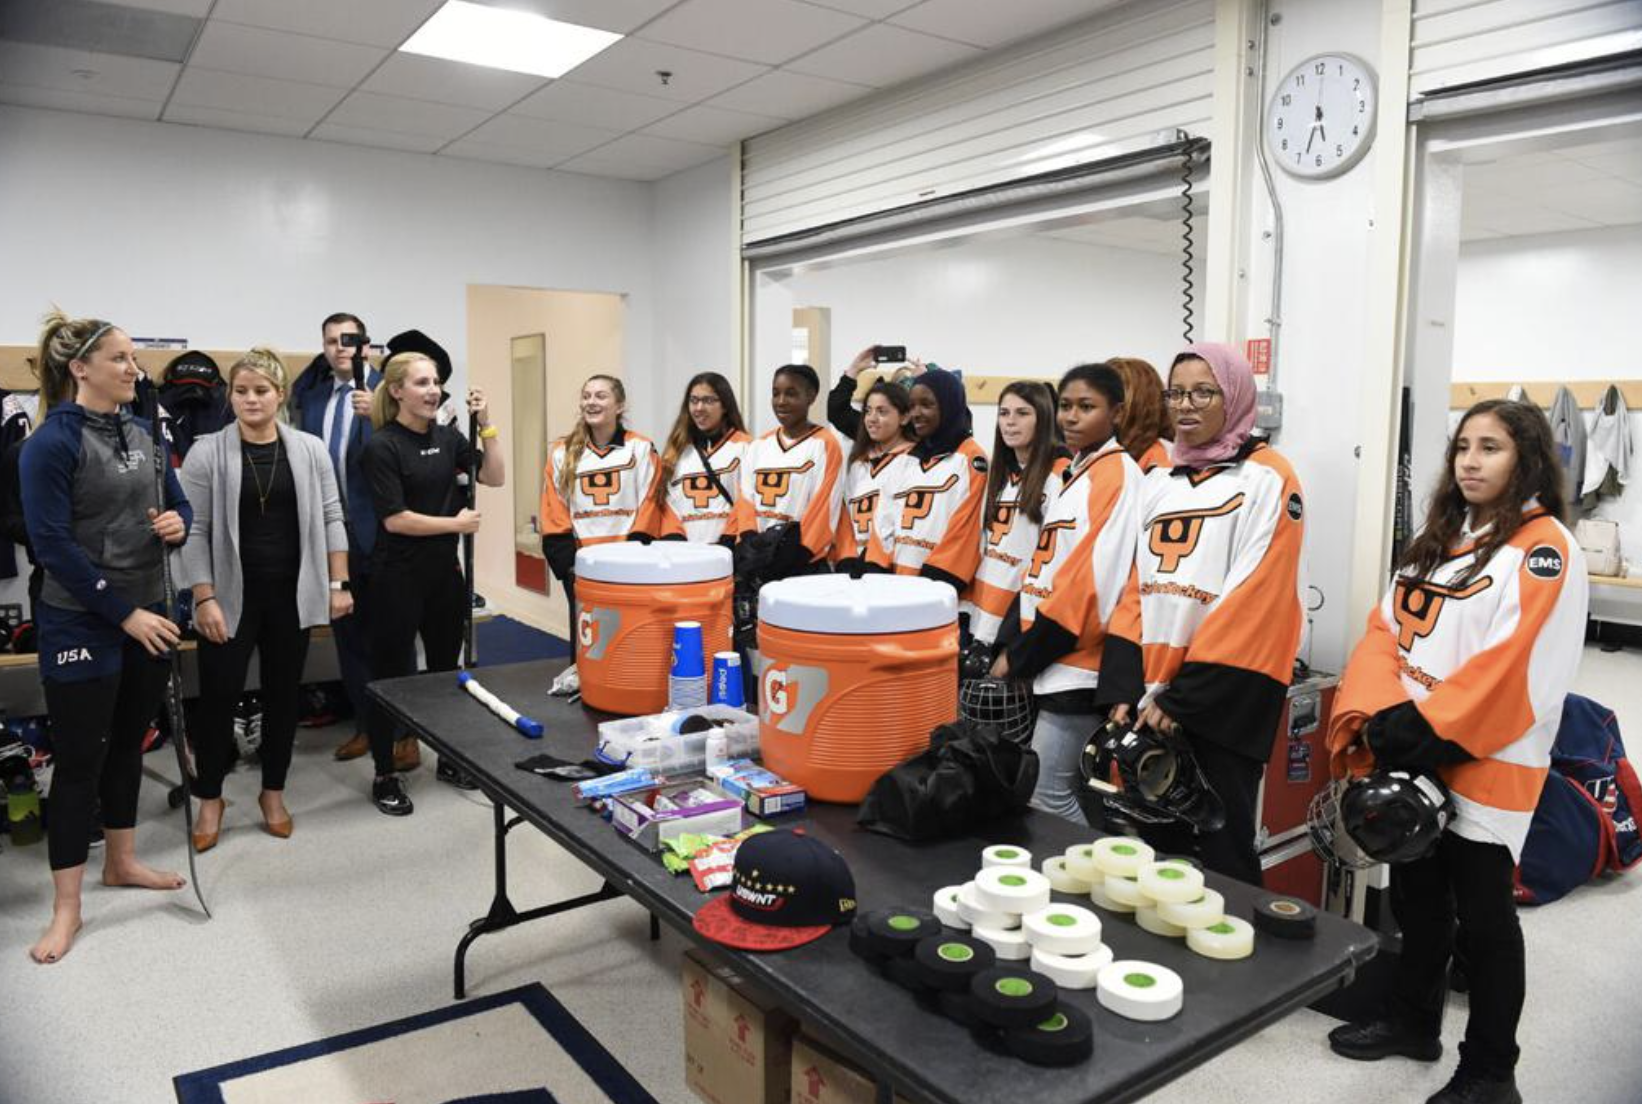 11 young ladies from Snider Hockey came to visit the USWNT for their game vs Canada (in Boston)as guests of the Lamoureux Twins and were embraced and shown the ropes on game night by Team USA.